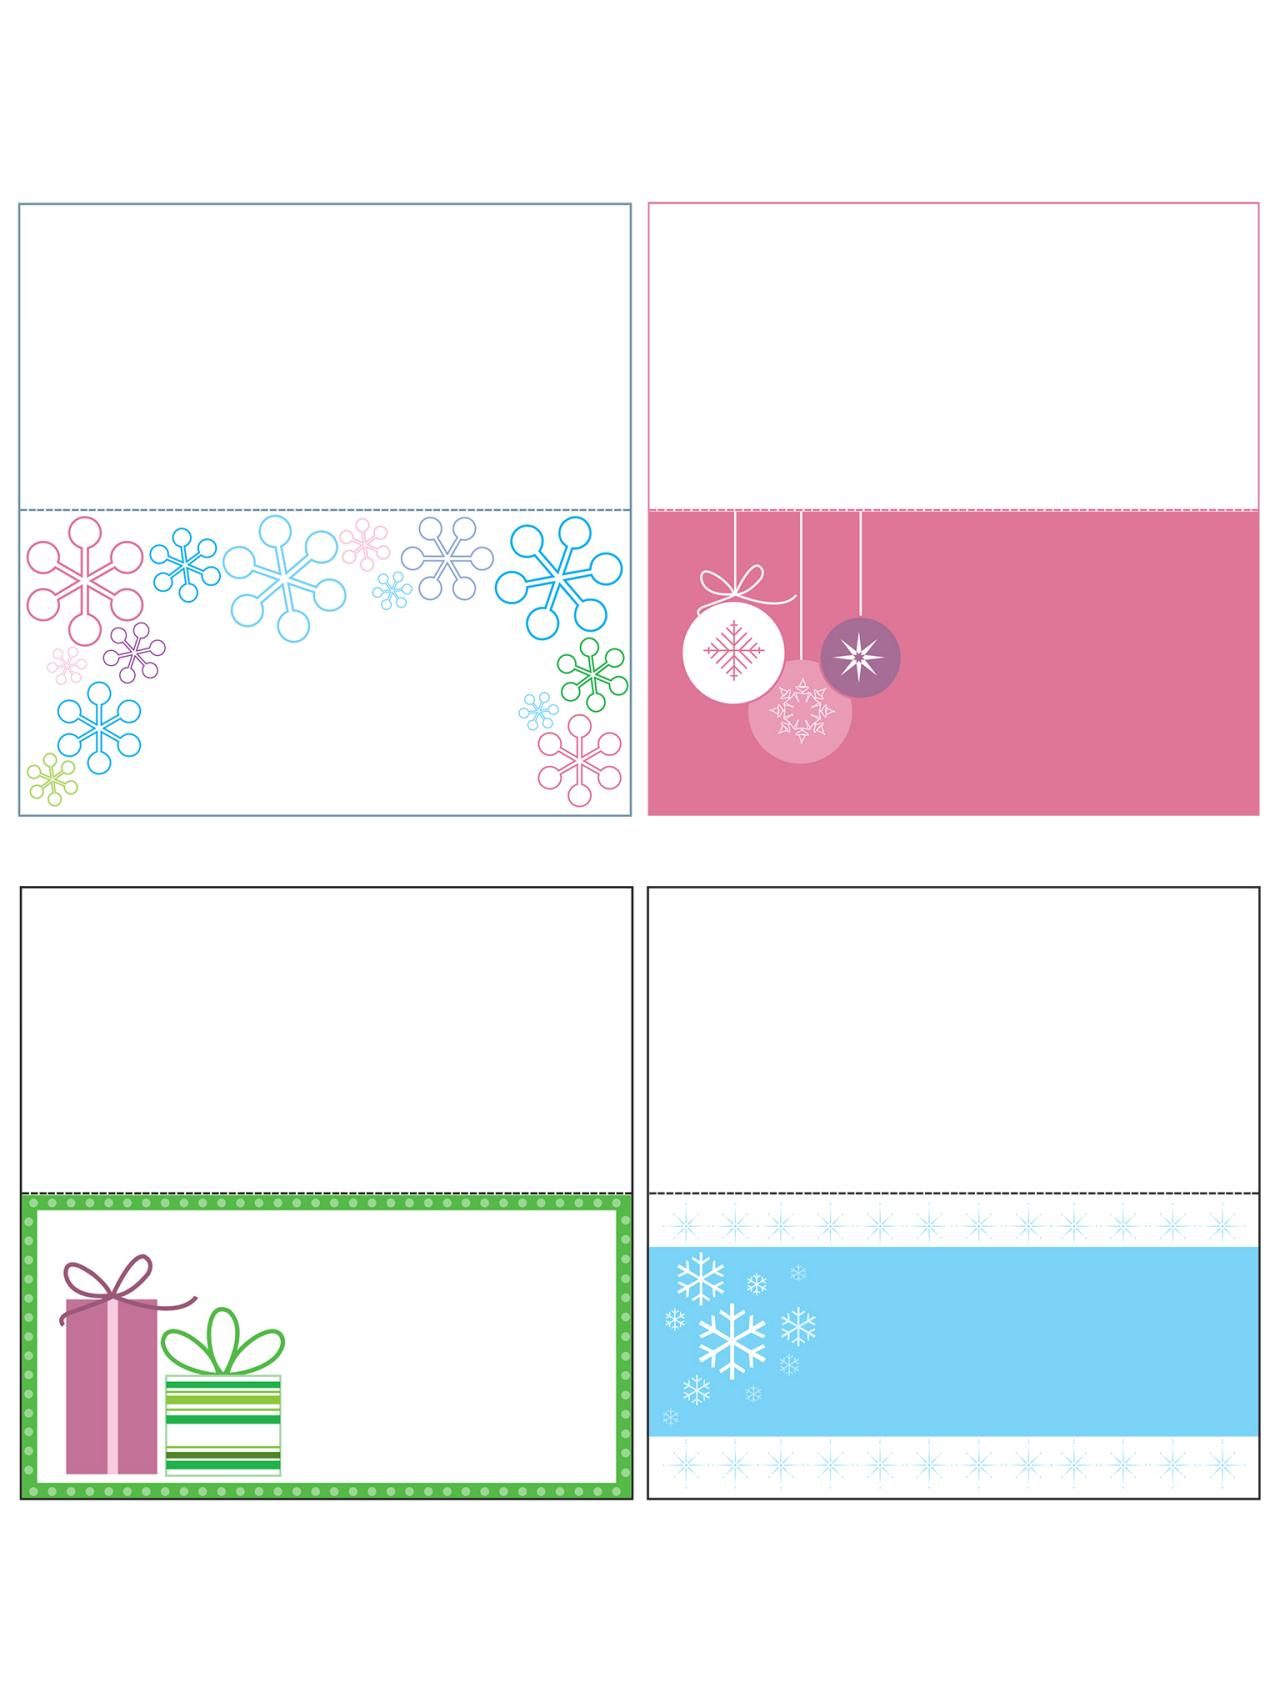 graphic regarding Gift Tag Printable Free referred to as Totally free Xmas Templates: Printable Reward Tags, Playing cards, Crafts